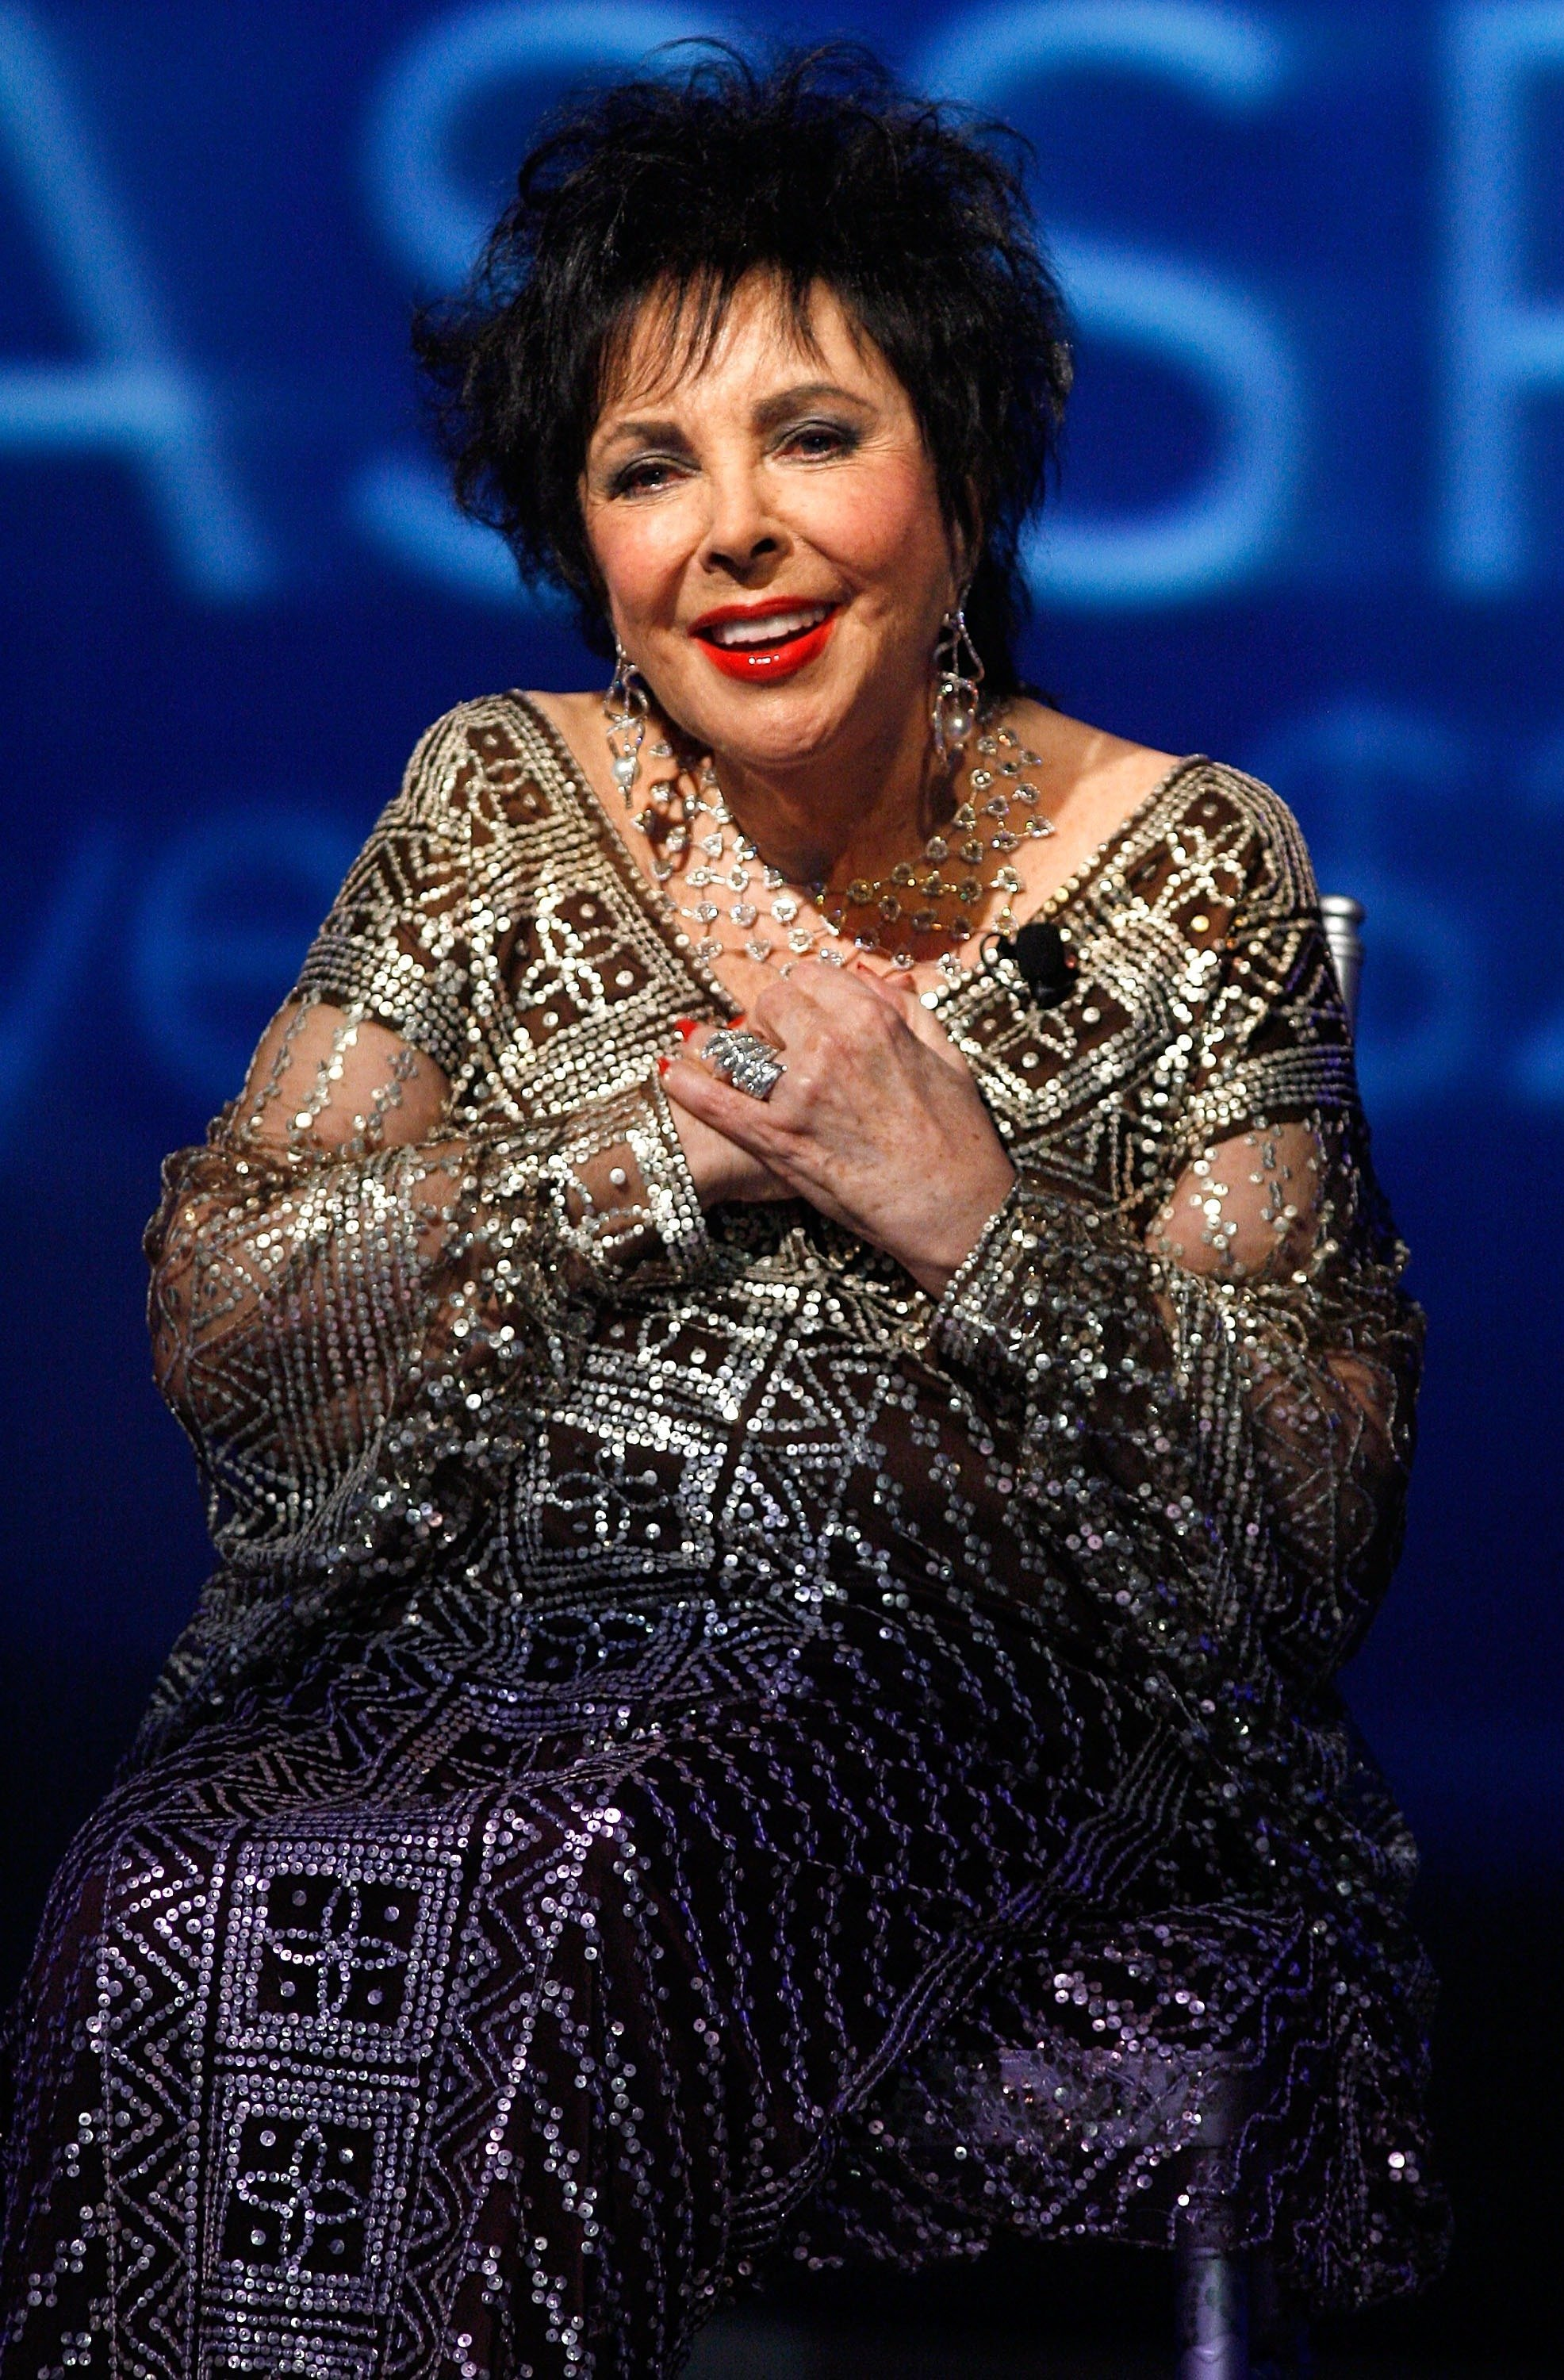 Elizabeth Taylor speaks onstage during the 25th Anniversary celebration gala for Macy's Passport on September 27, 2007, in Los Angeles, California. | Source: Getty Images.